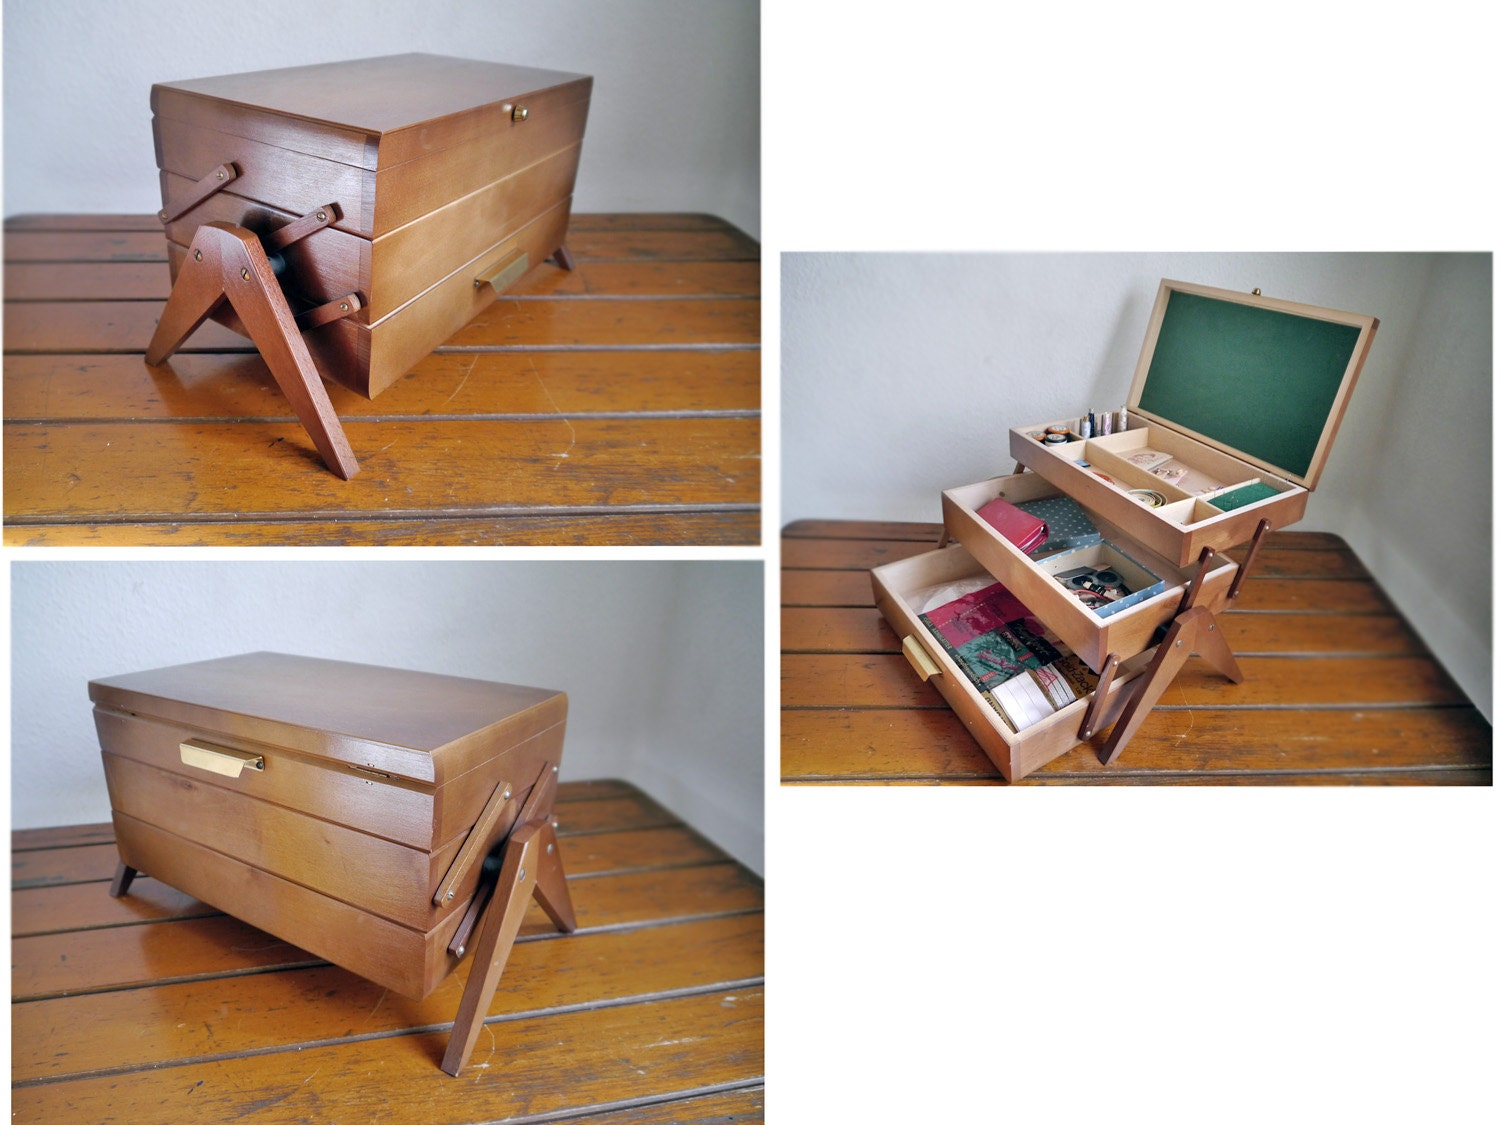 Vintage Sewing Basket Accordion Cabinet Box On Legs Wooden Space Age Furniture Mid Century Modern Jewelry Organizer Folding Cabinet Haute Juice